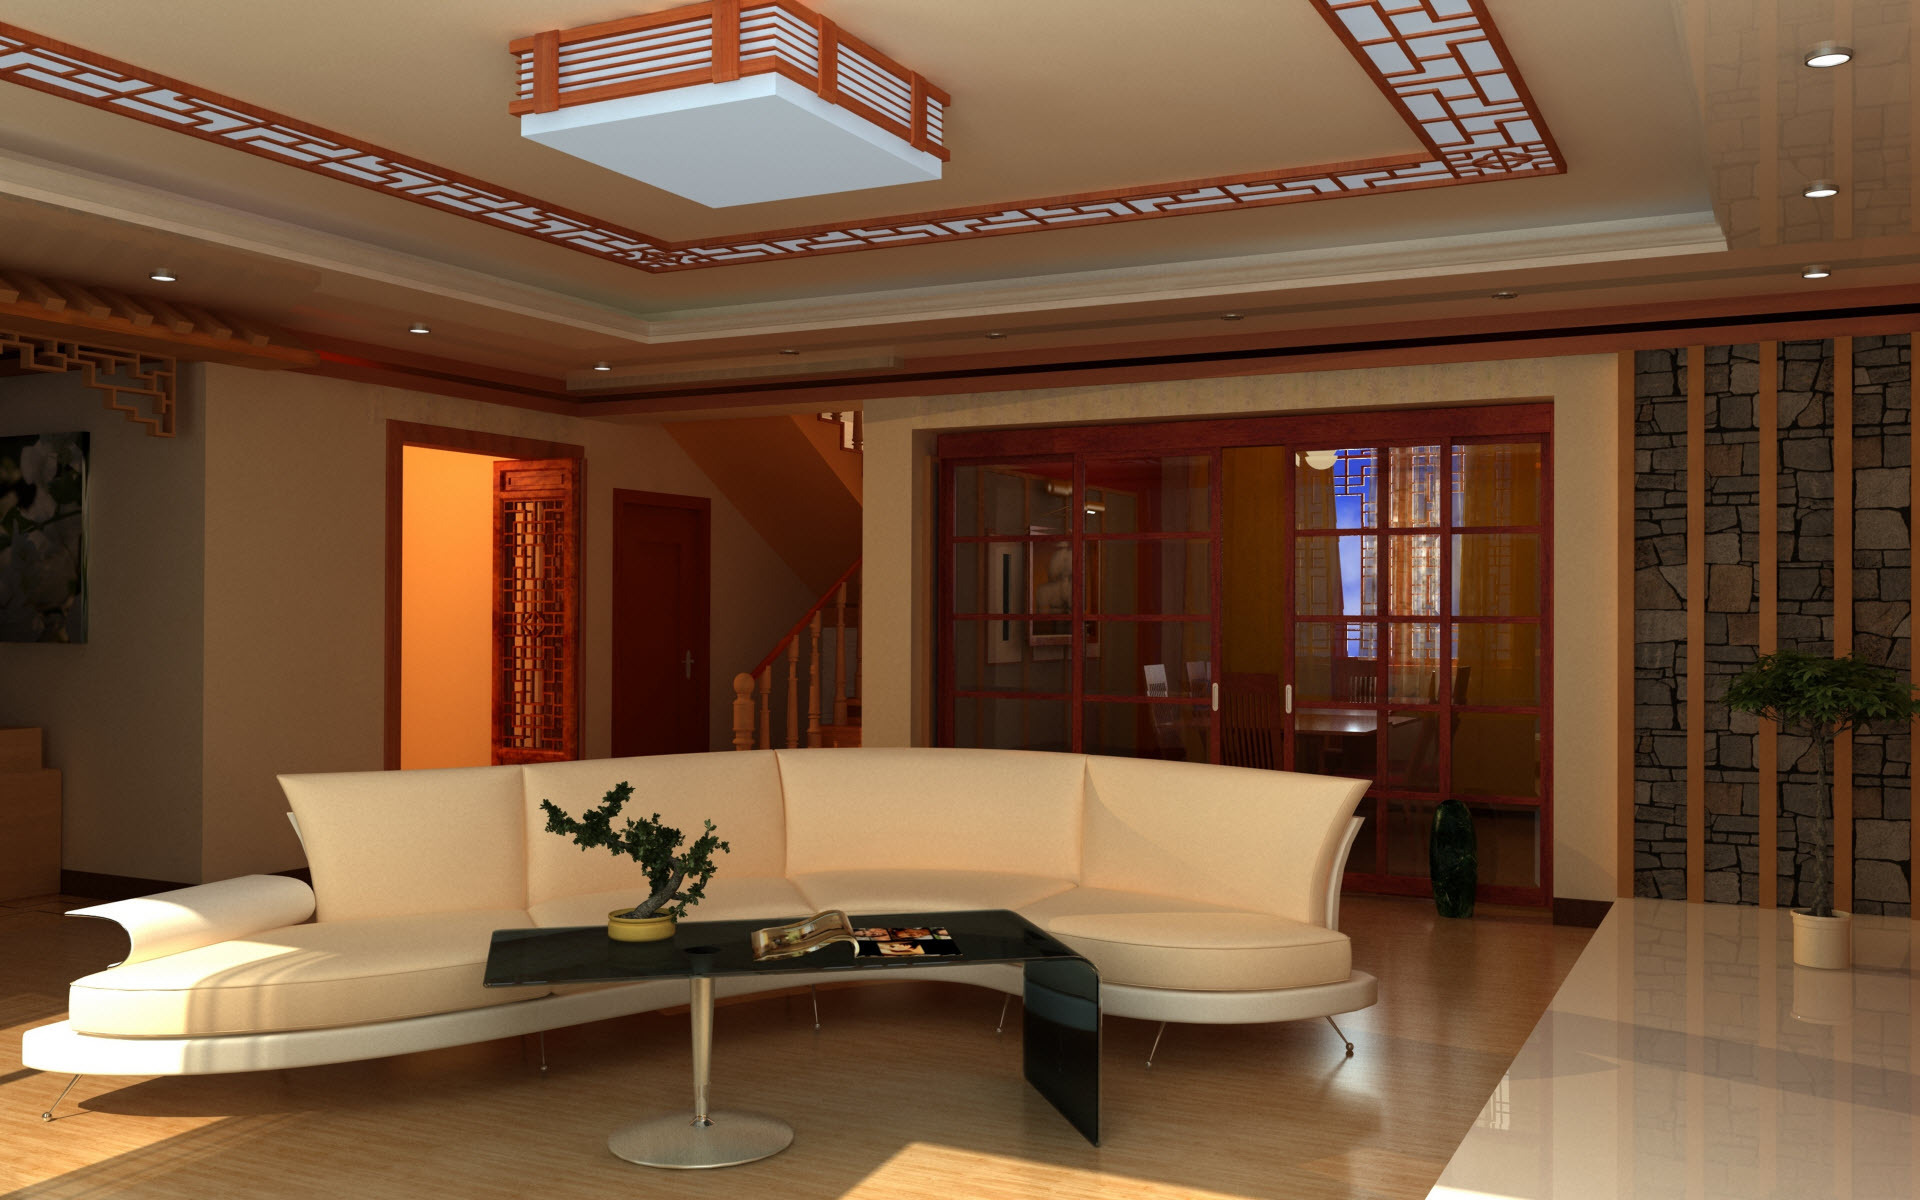 Room Hd Wallpaper Background Image 1920x1200 Id